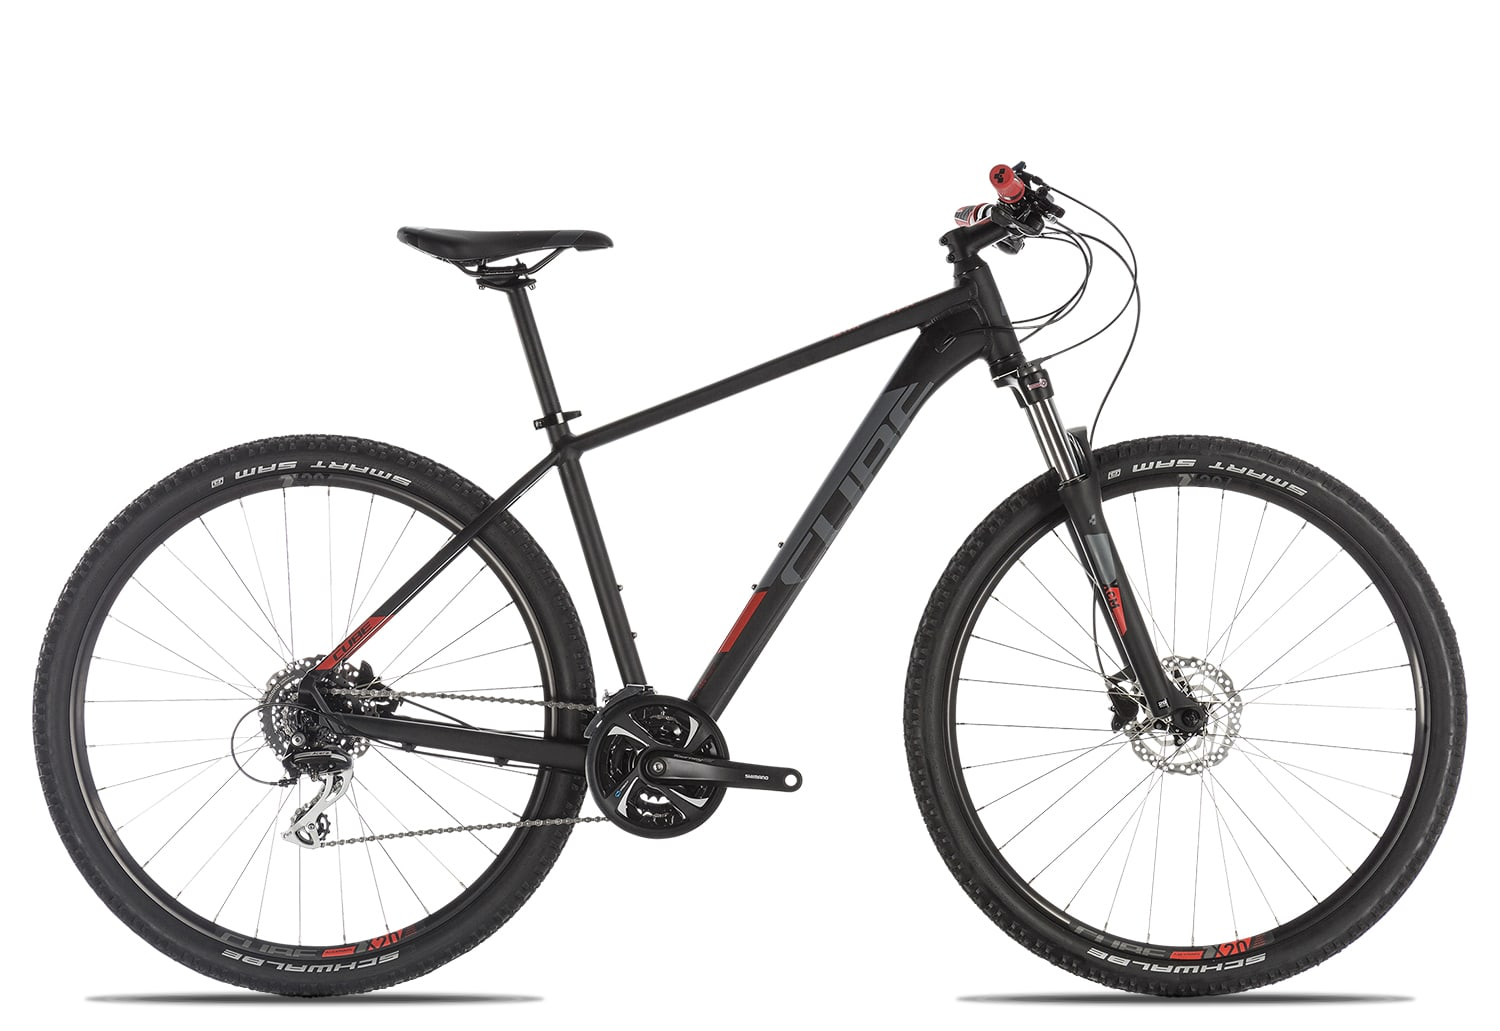 Cube Aim Race 2019 17 Zoll | black'n'red | 29 Zoll